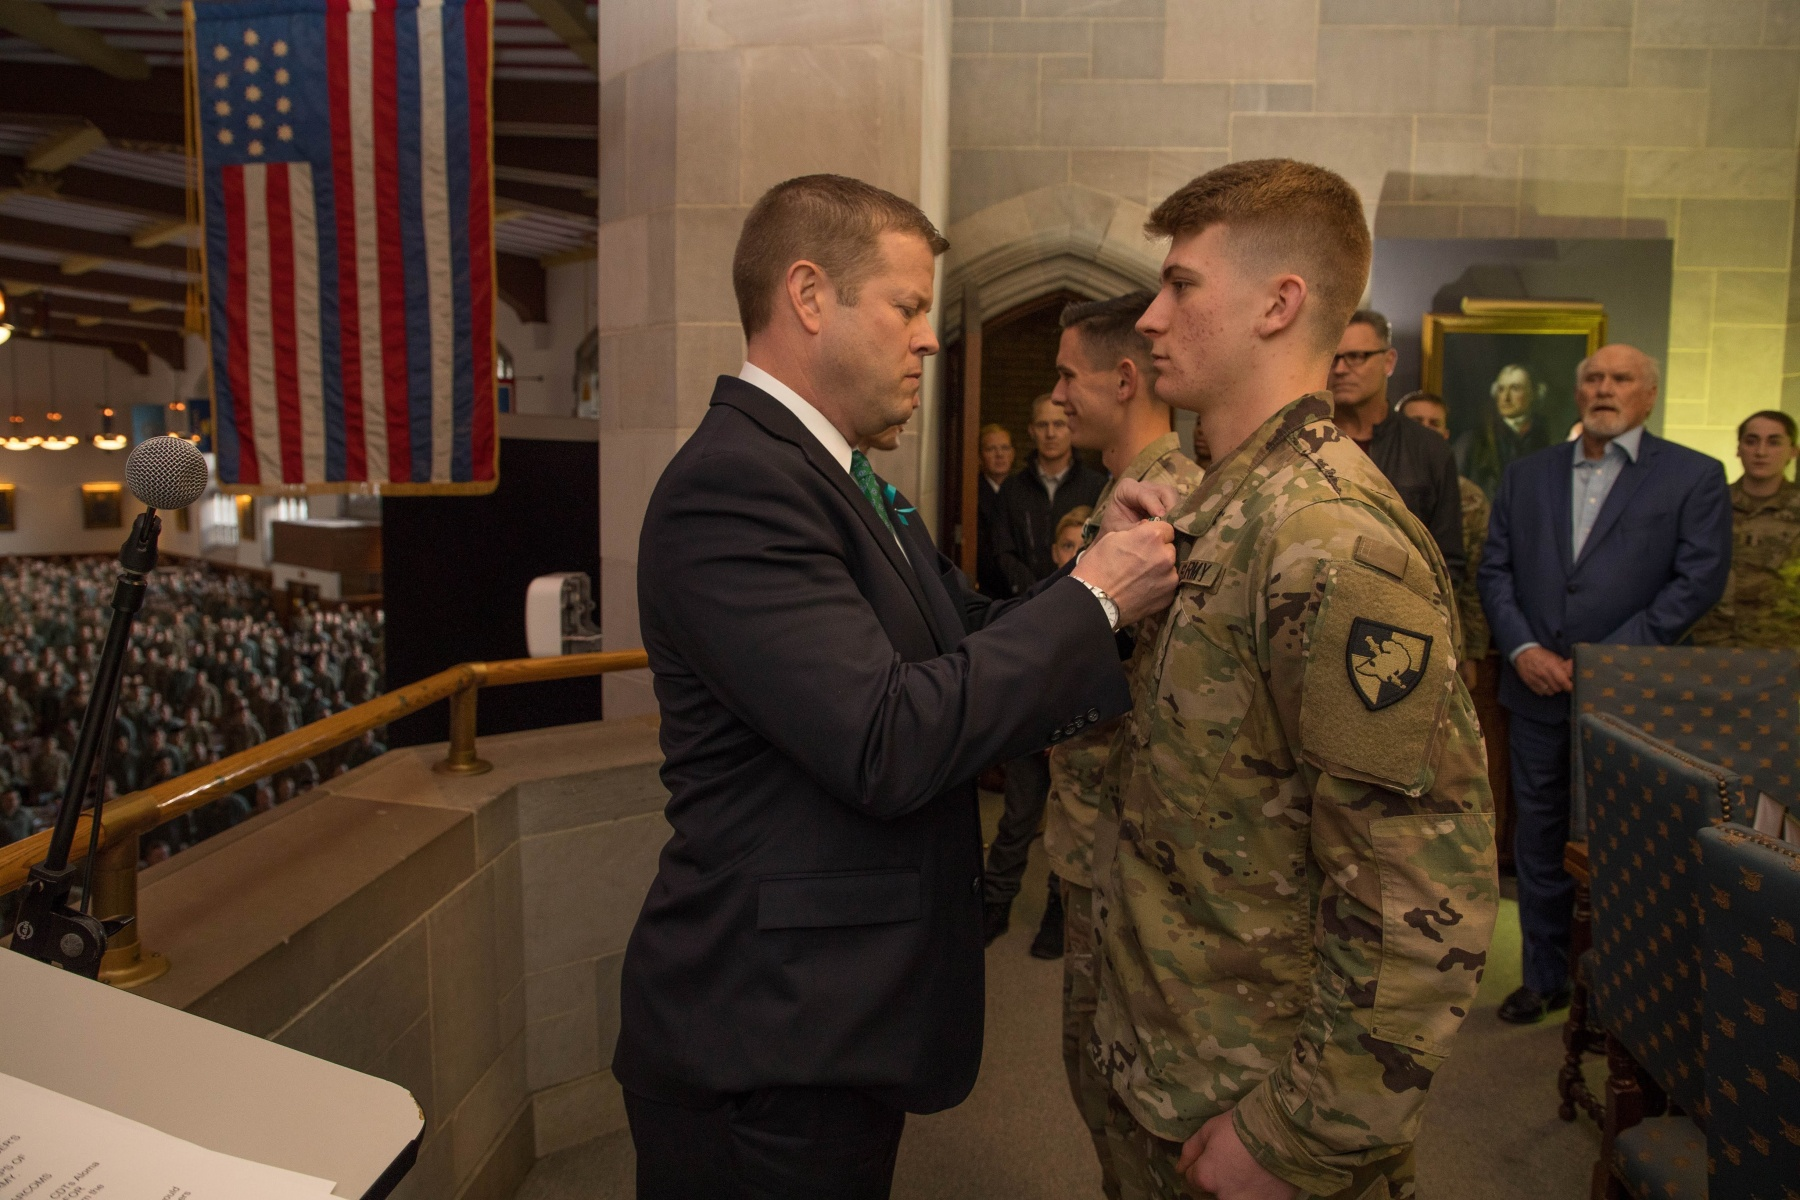 Secretary of the Army Ryan D. McCarthy issued the Army Commendation Medal and coins to Class of 2020 Cadet Zachary Aloma and Class of 2023 Cadet Hudson Durfield, who helped save a man's life after he collapsed following a heart attack, during his visit to West Point on November 08, 2019. (Tarnish Pride/Army)